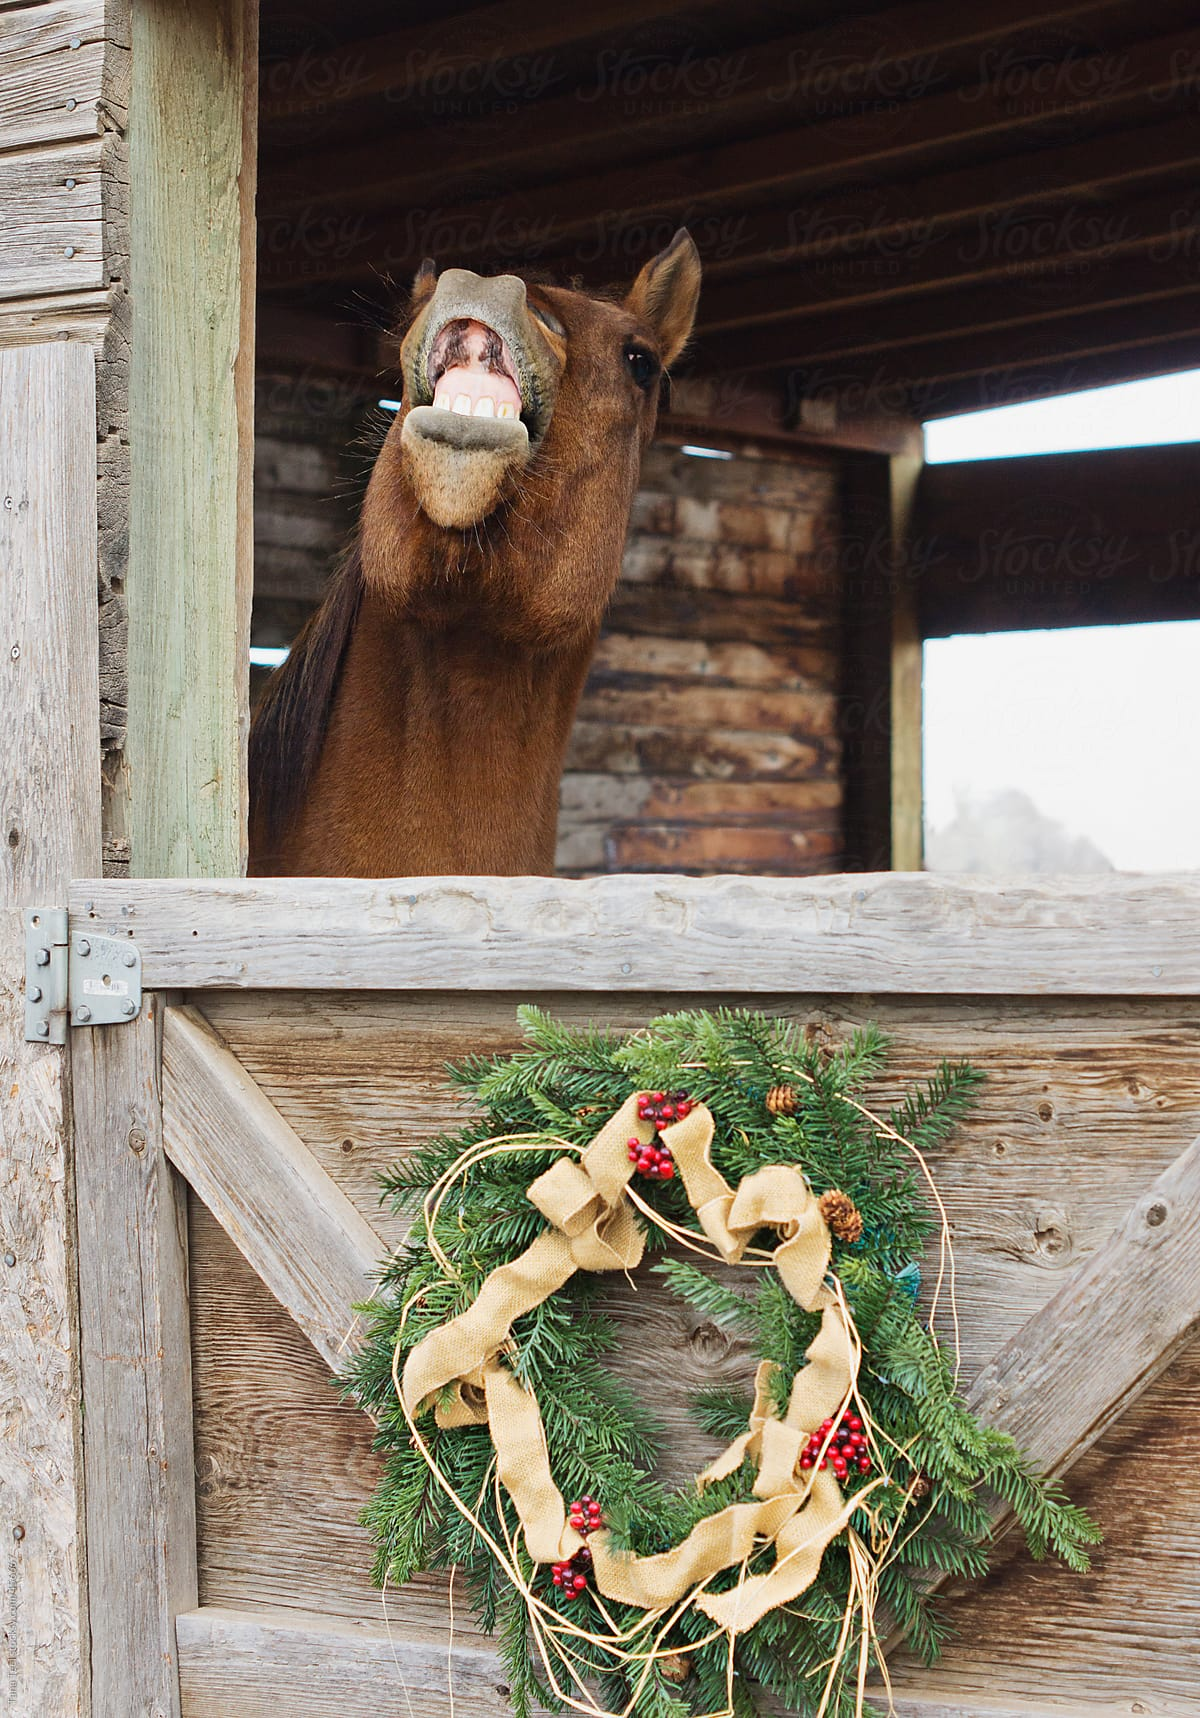 Horse Shows Teeth Out A Stall Door With Christmas Wreath Decoration By Tana Teel Stocksy United